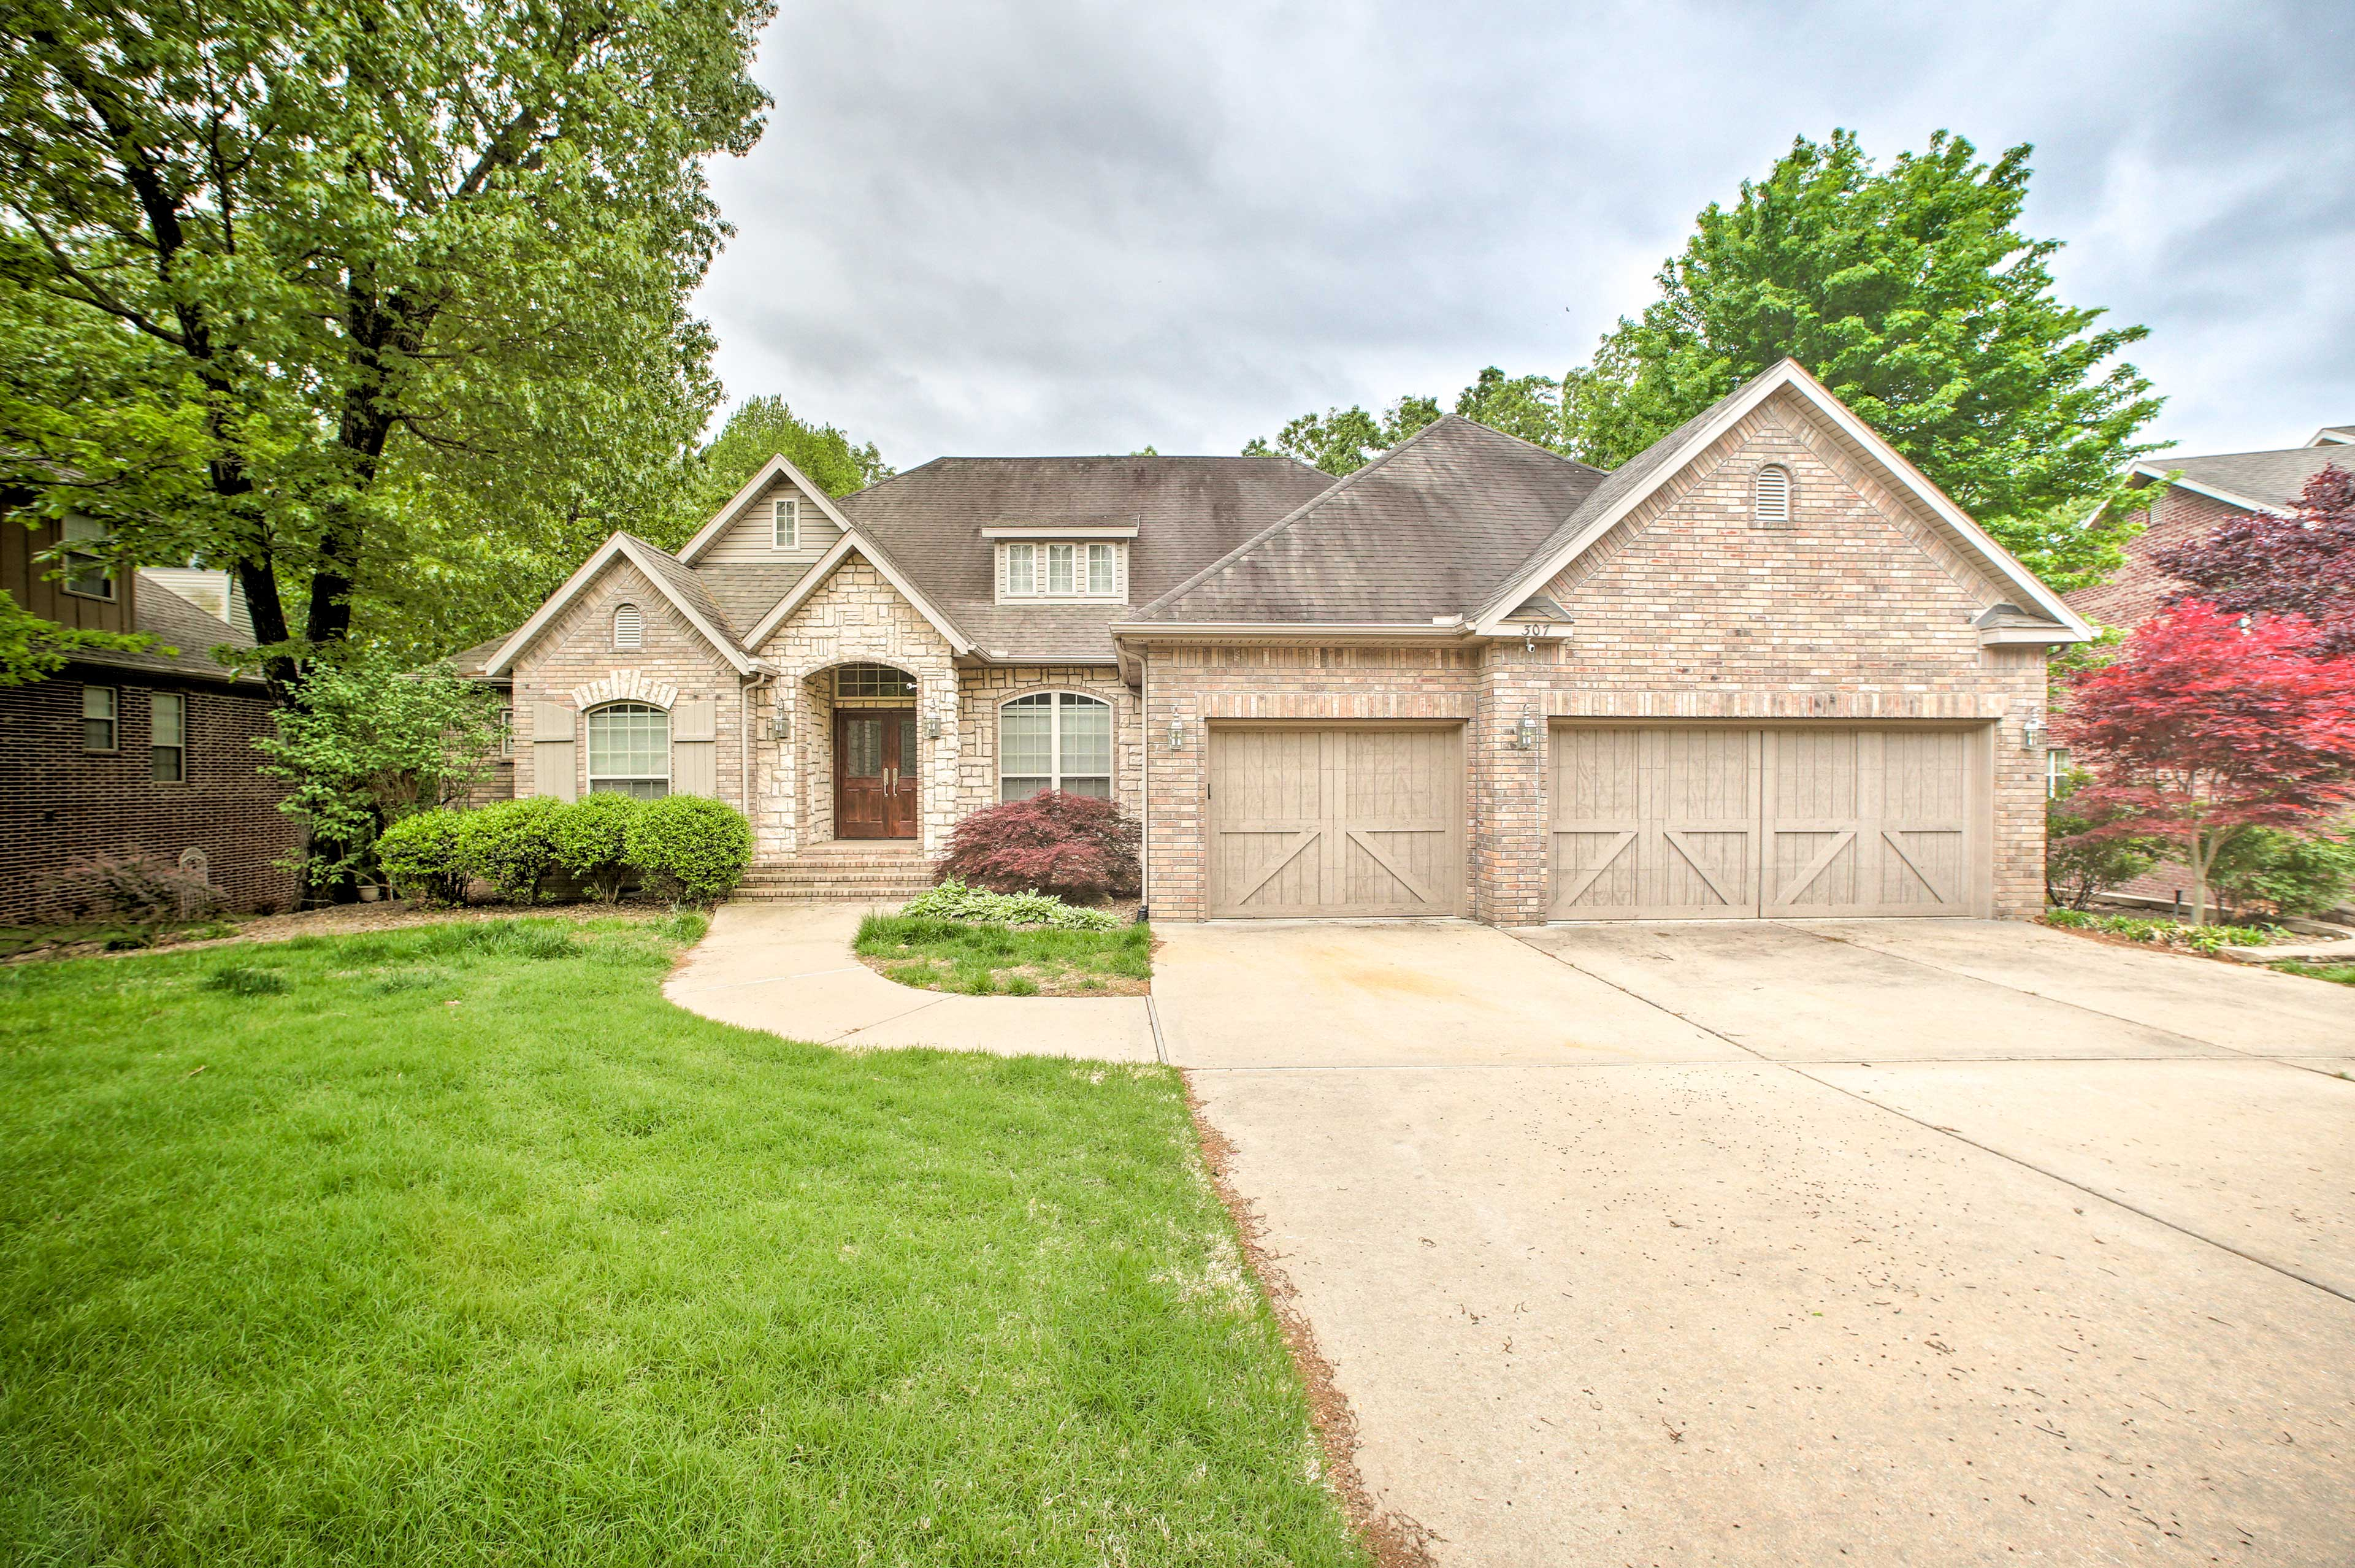 Bentonville Vacation Rental   4BR   3.5 BA   3,850 Sq Ft   Stairs Required